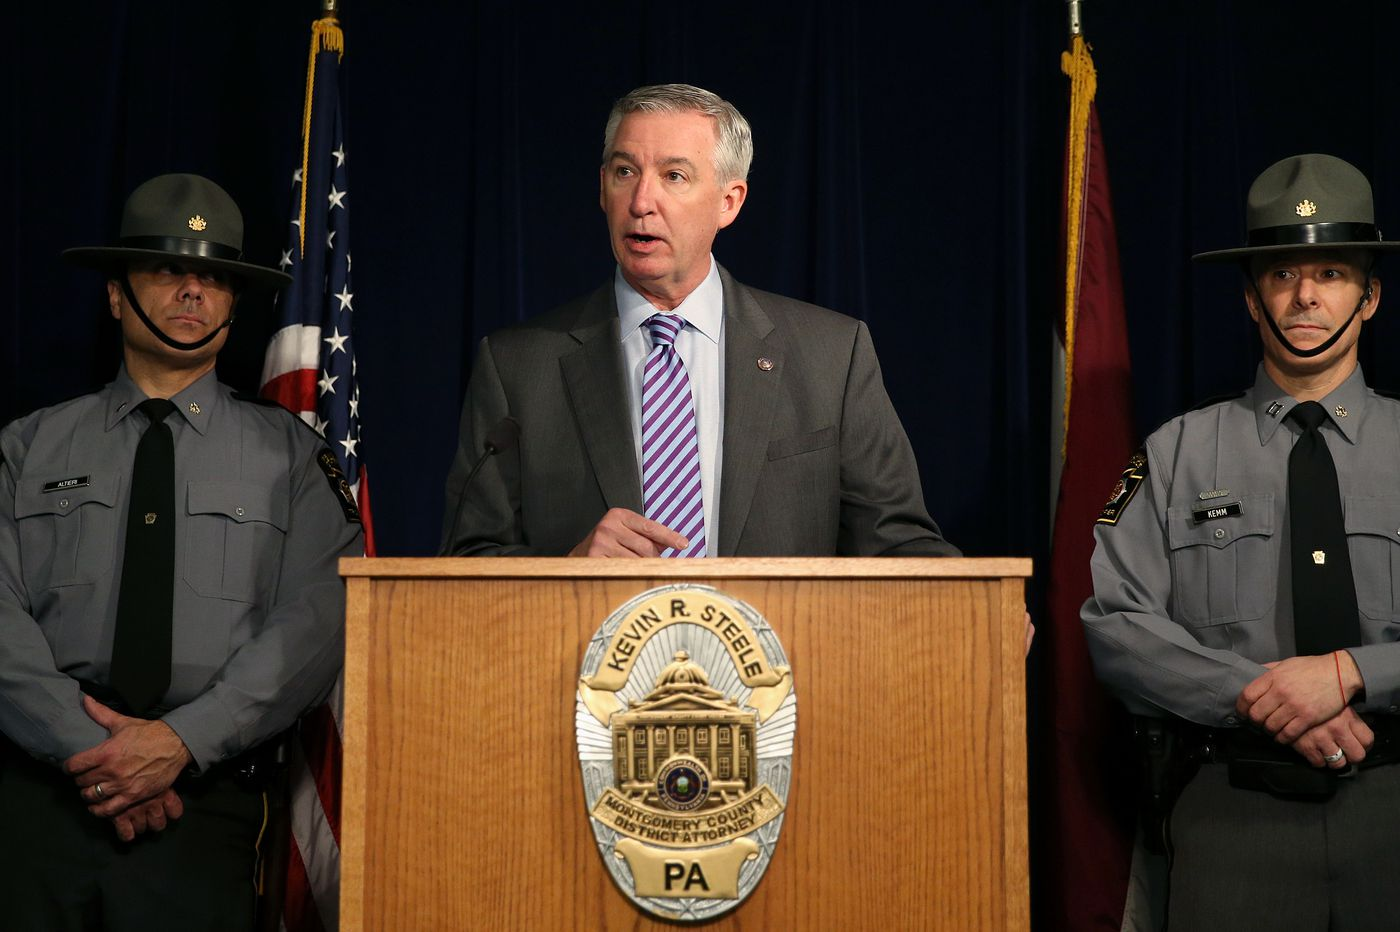 Collegeville man was justified in killing home intruder, Montgomery County DA says